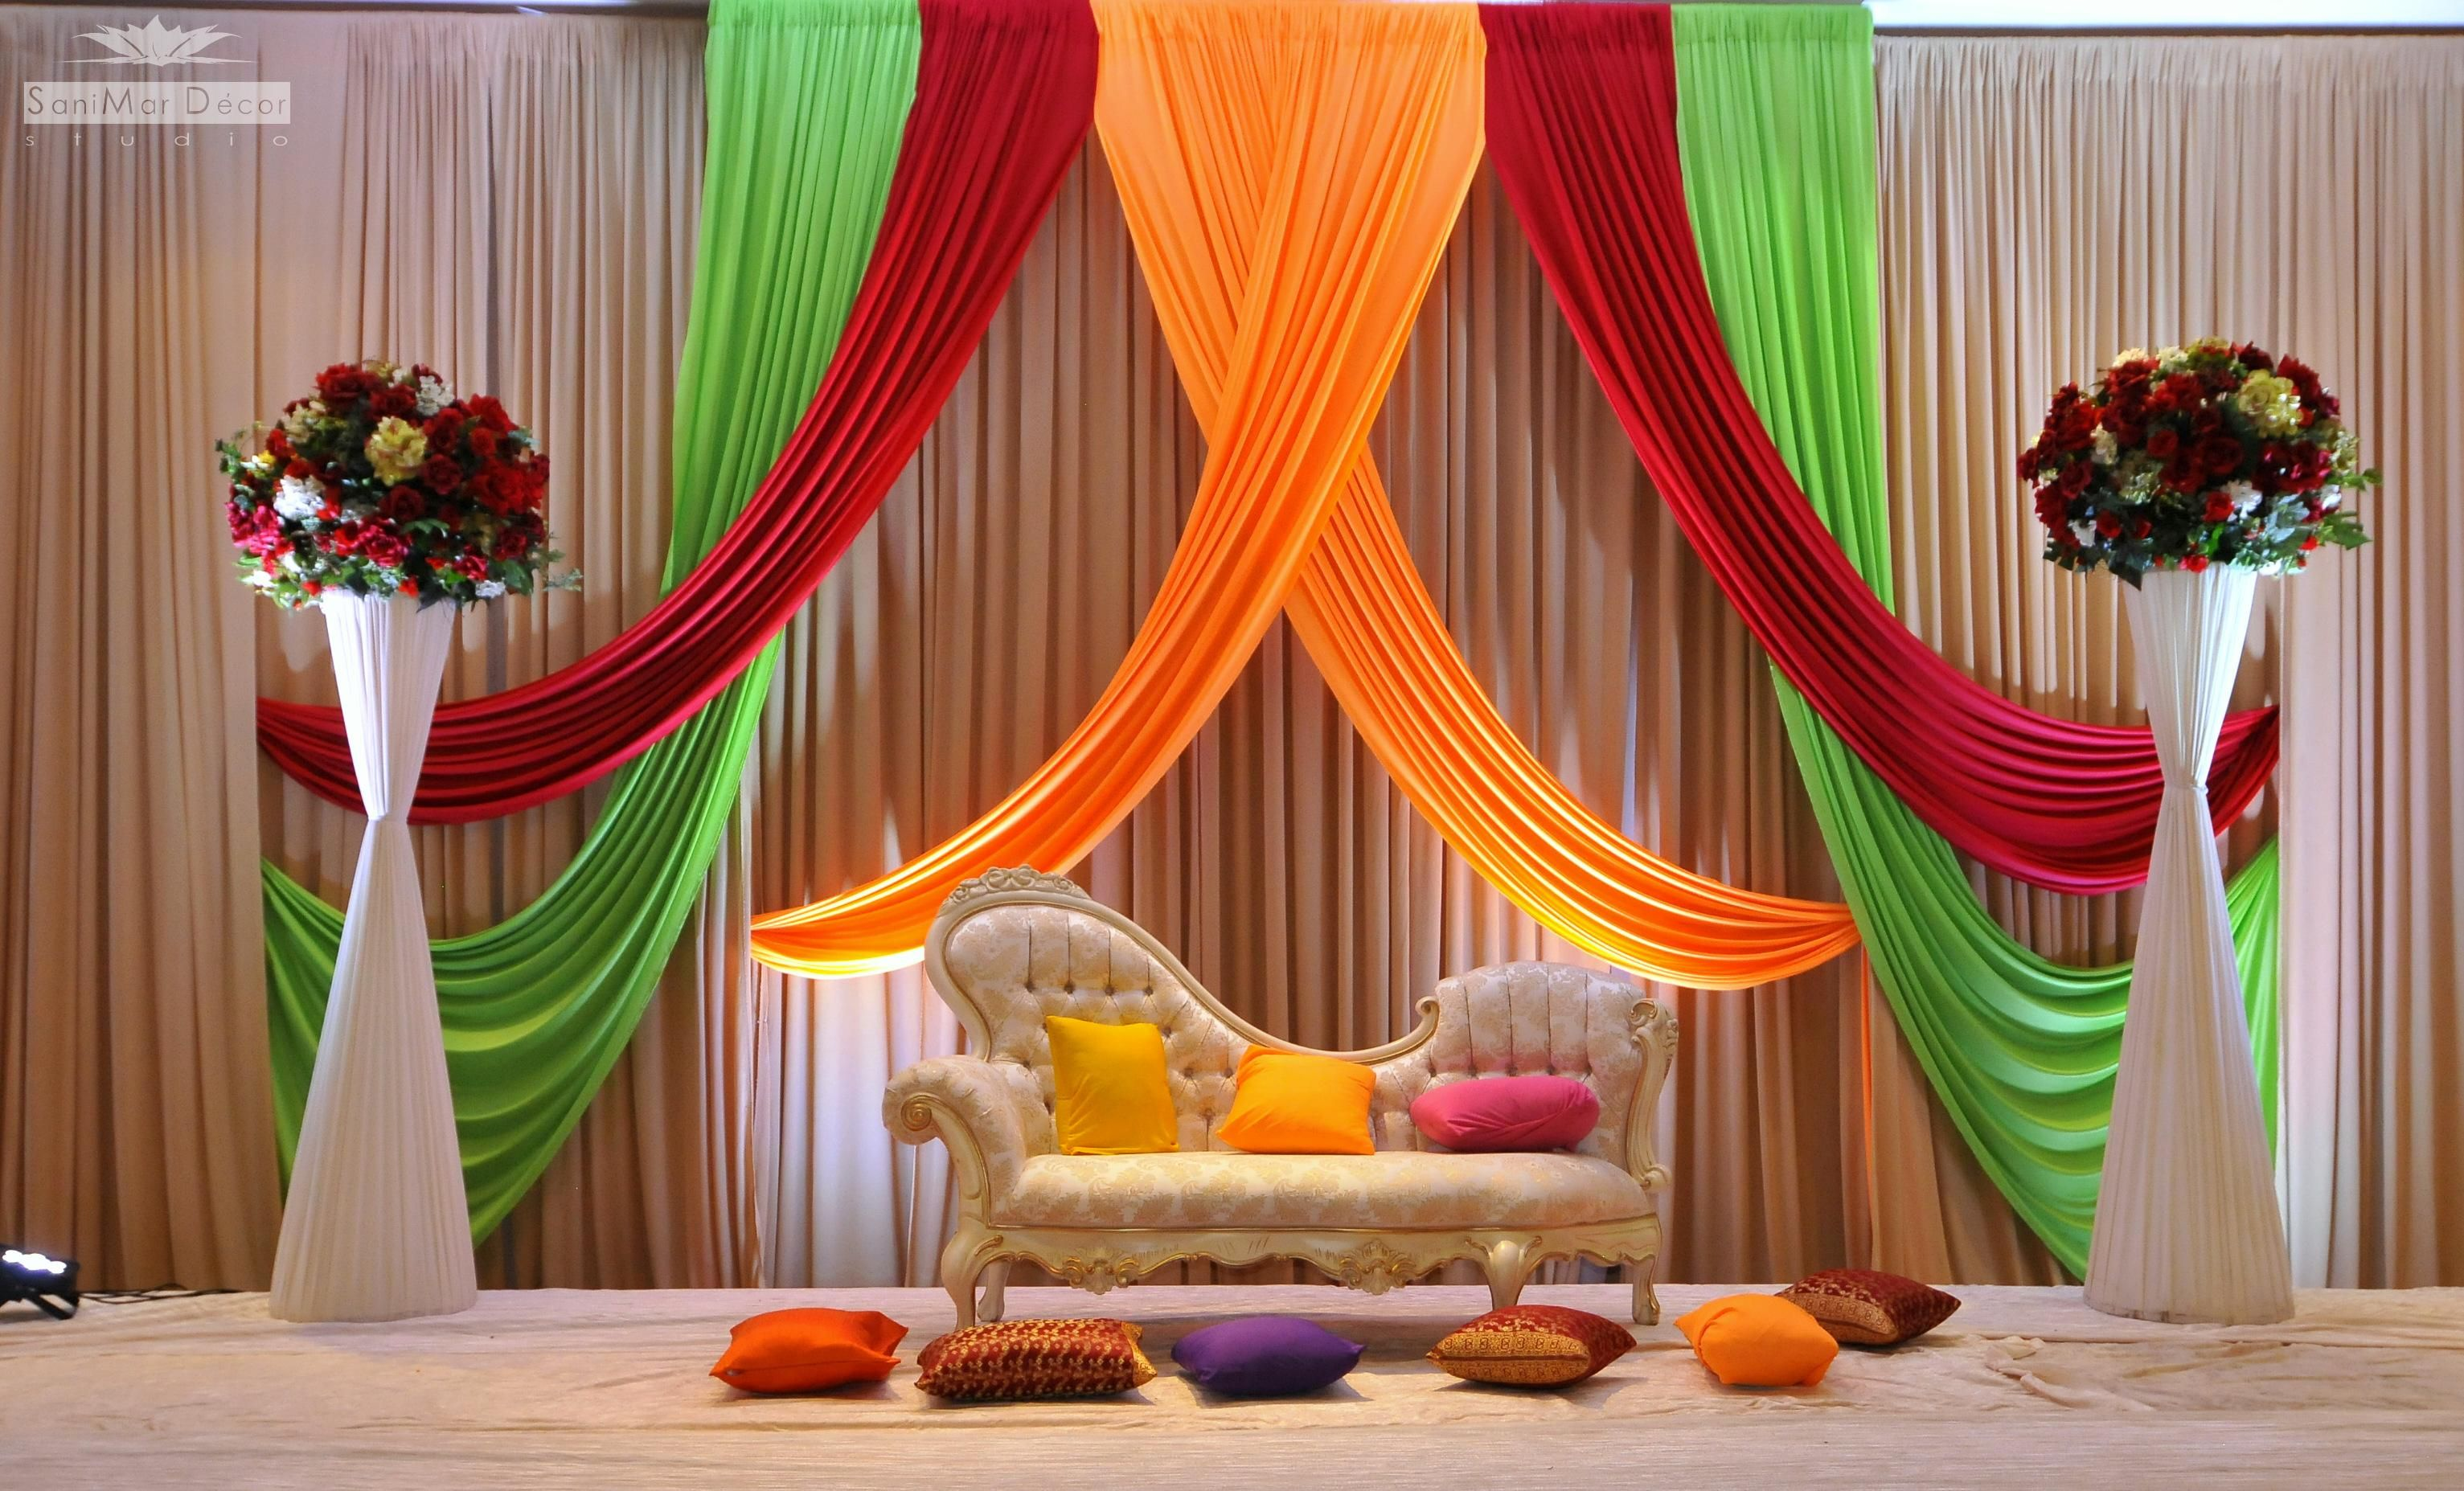 Wedding stage decoration wedding decorations natural for Home decoration images